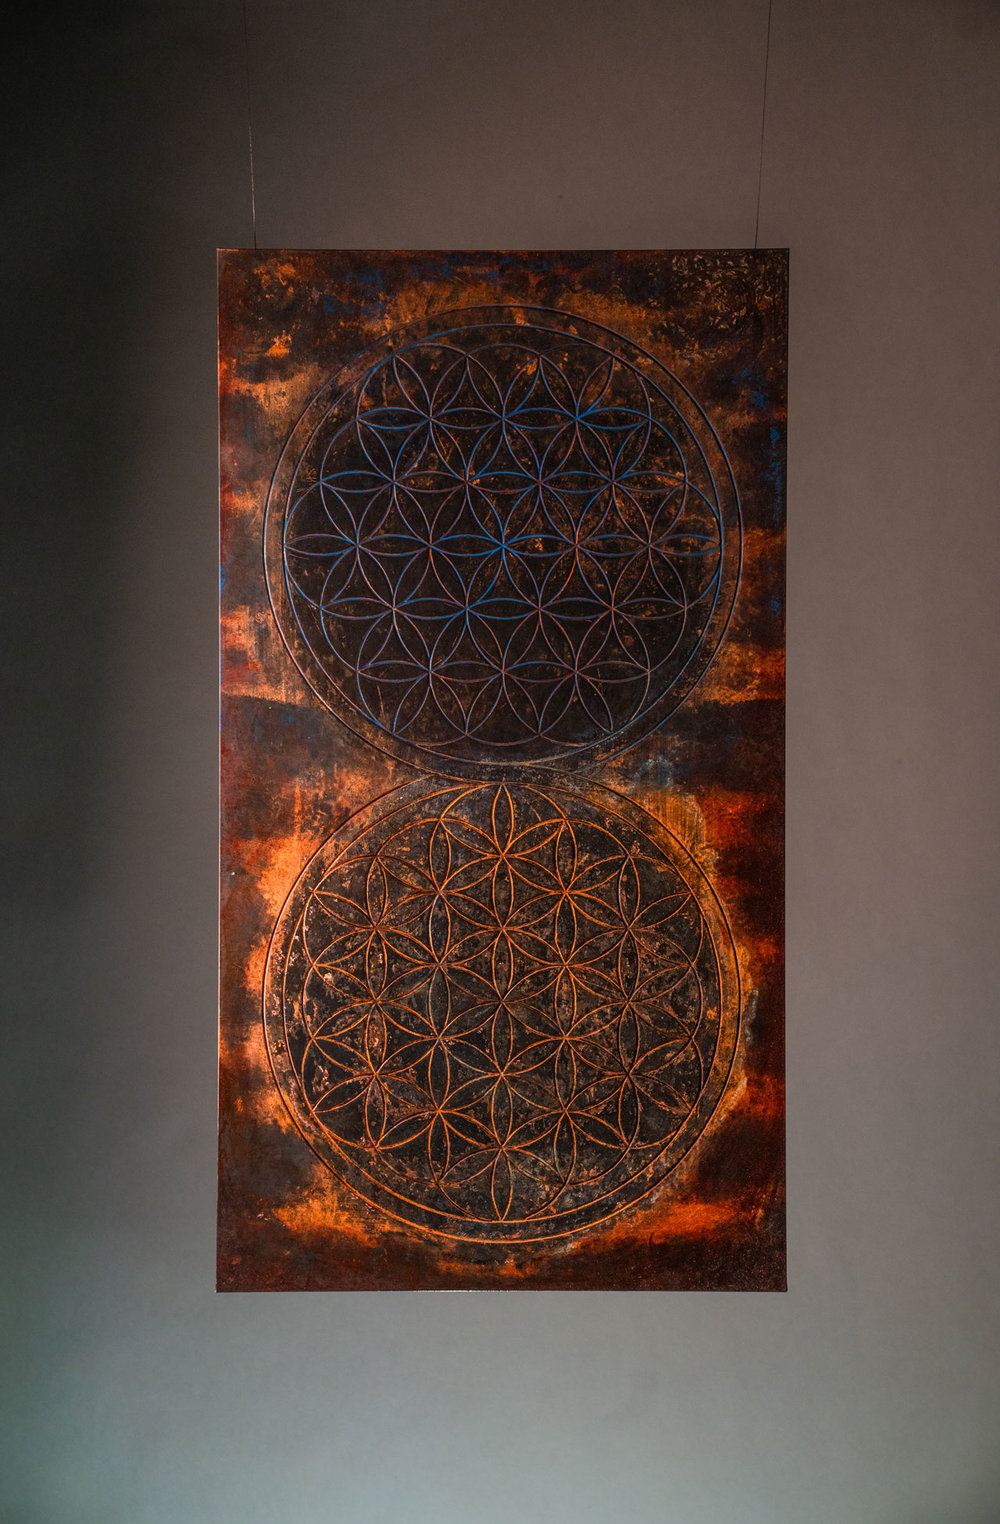 DUALITY - The fundamental forms of space and time reflected, one in shadow, one in light but otherwise identical in every sense. Parallel universes kiss and converge, As you arch into it's six fold symmetry, don't be surprised if you happen upon your other self.MATERIAL: Copper